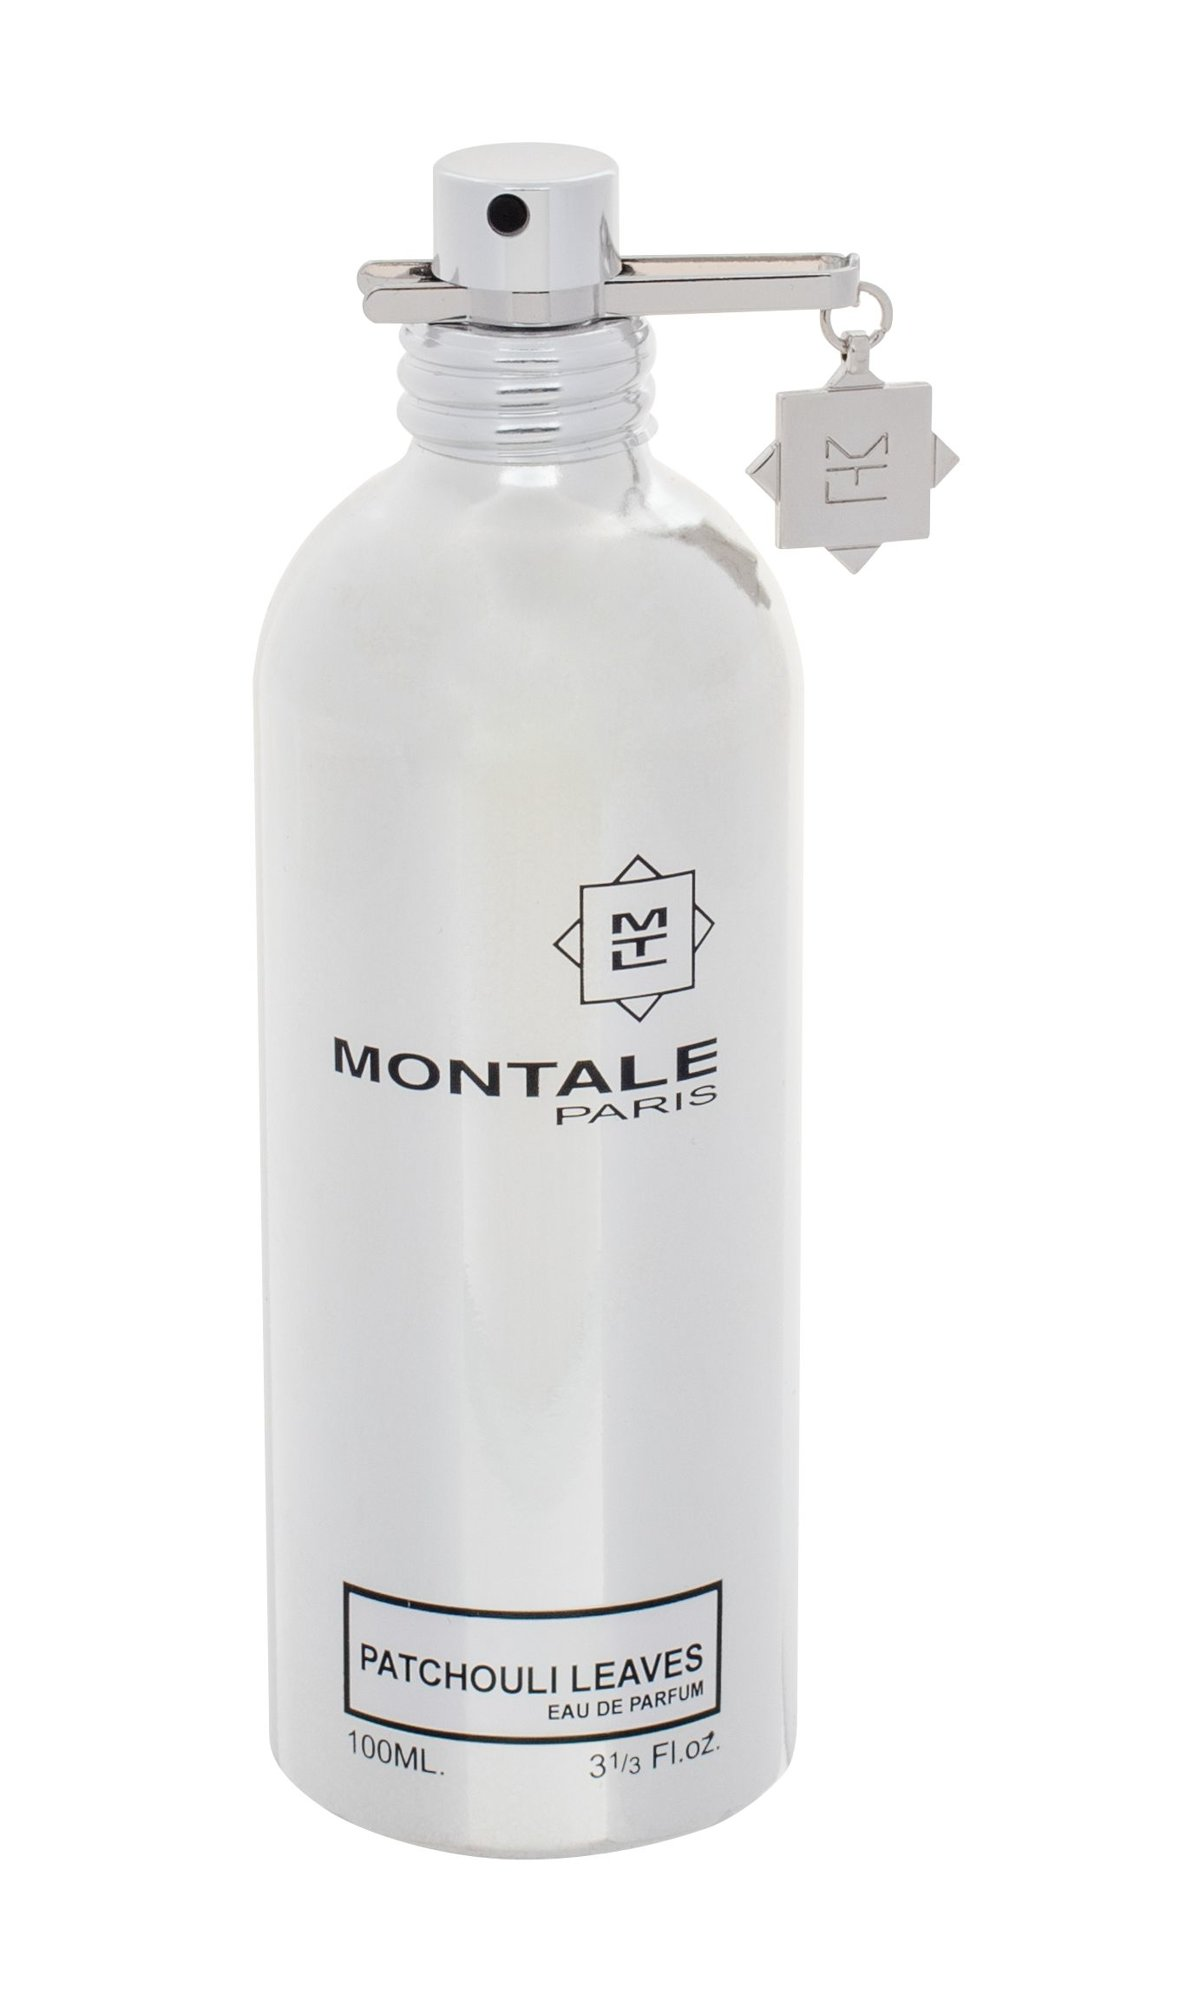 Montale Paris Patchouli Leaves EDP 100ml